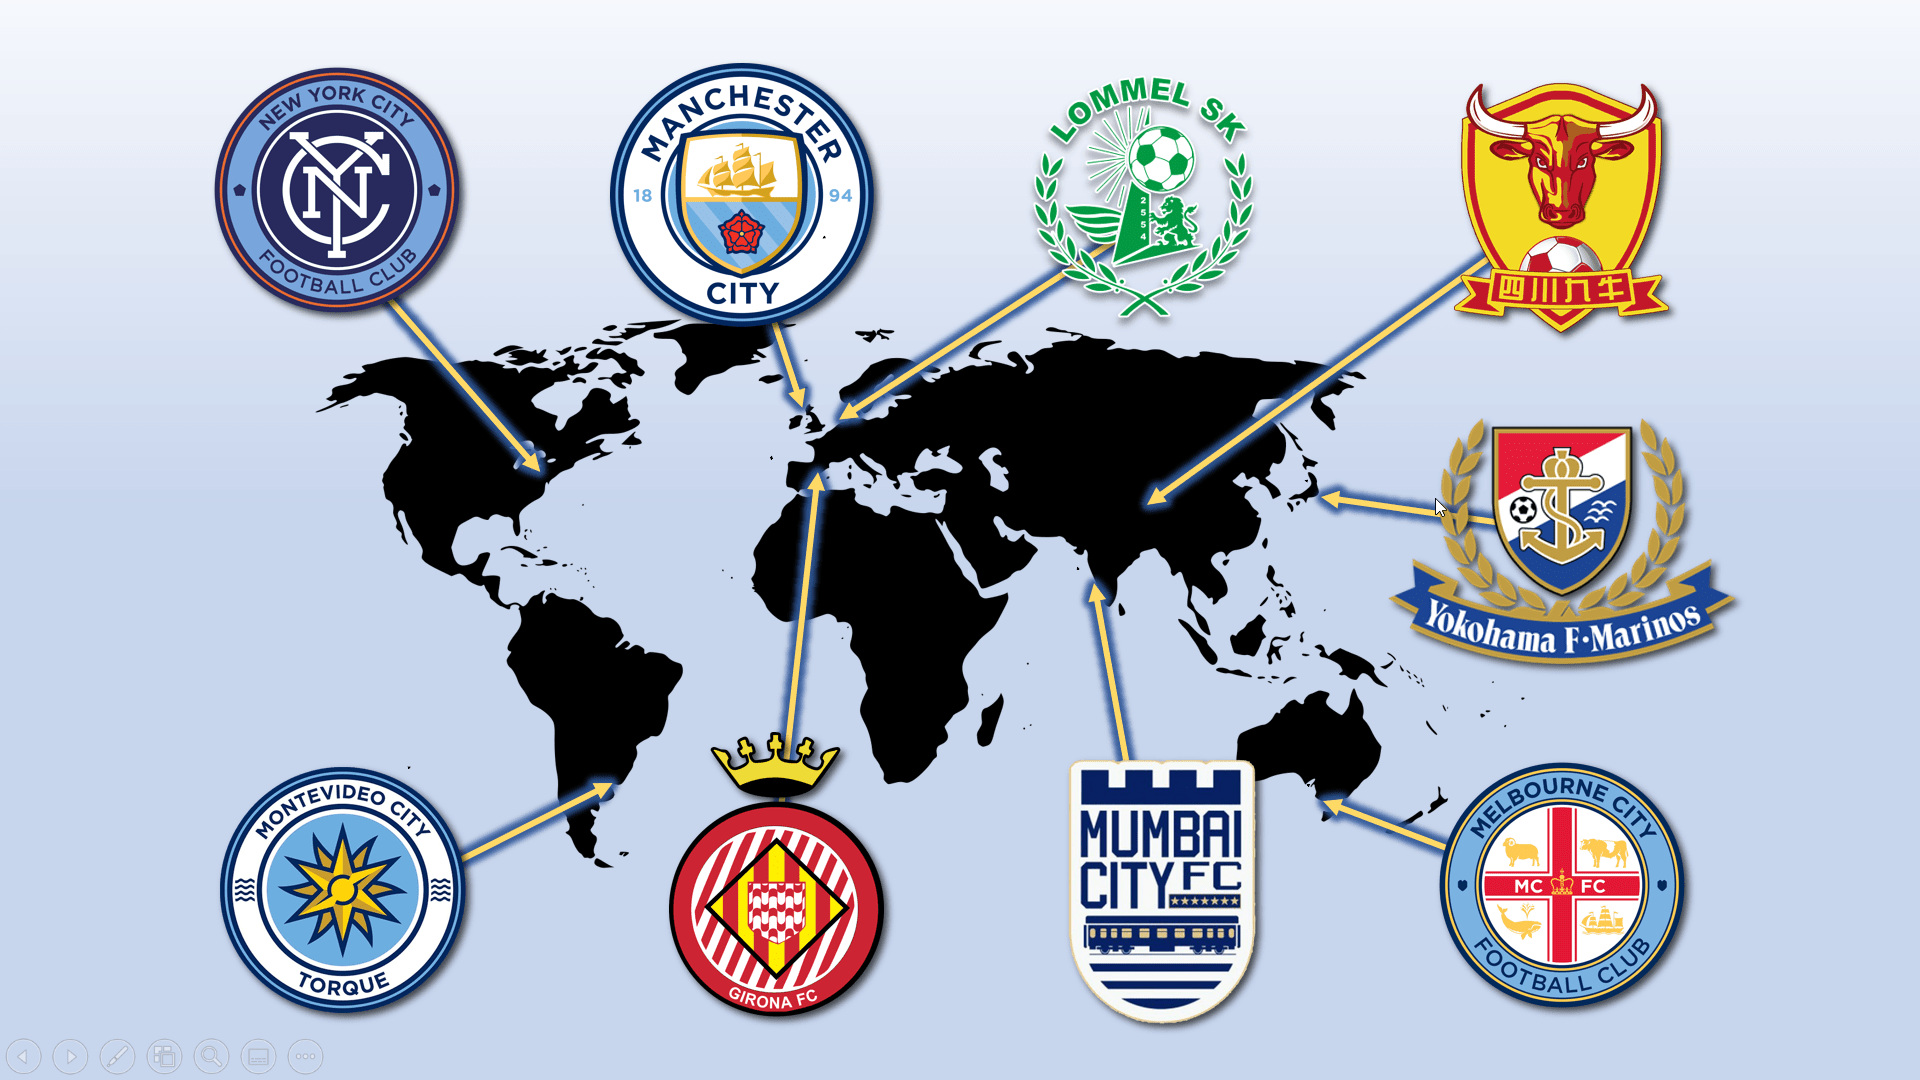 All the City Football Group (CFG) teams from around the world